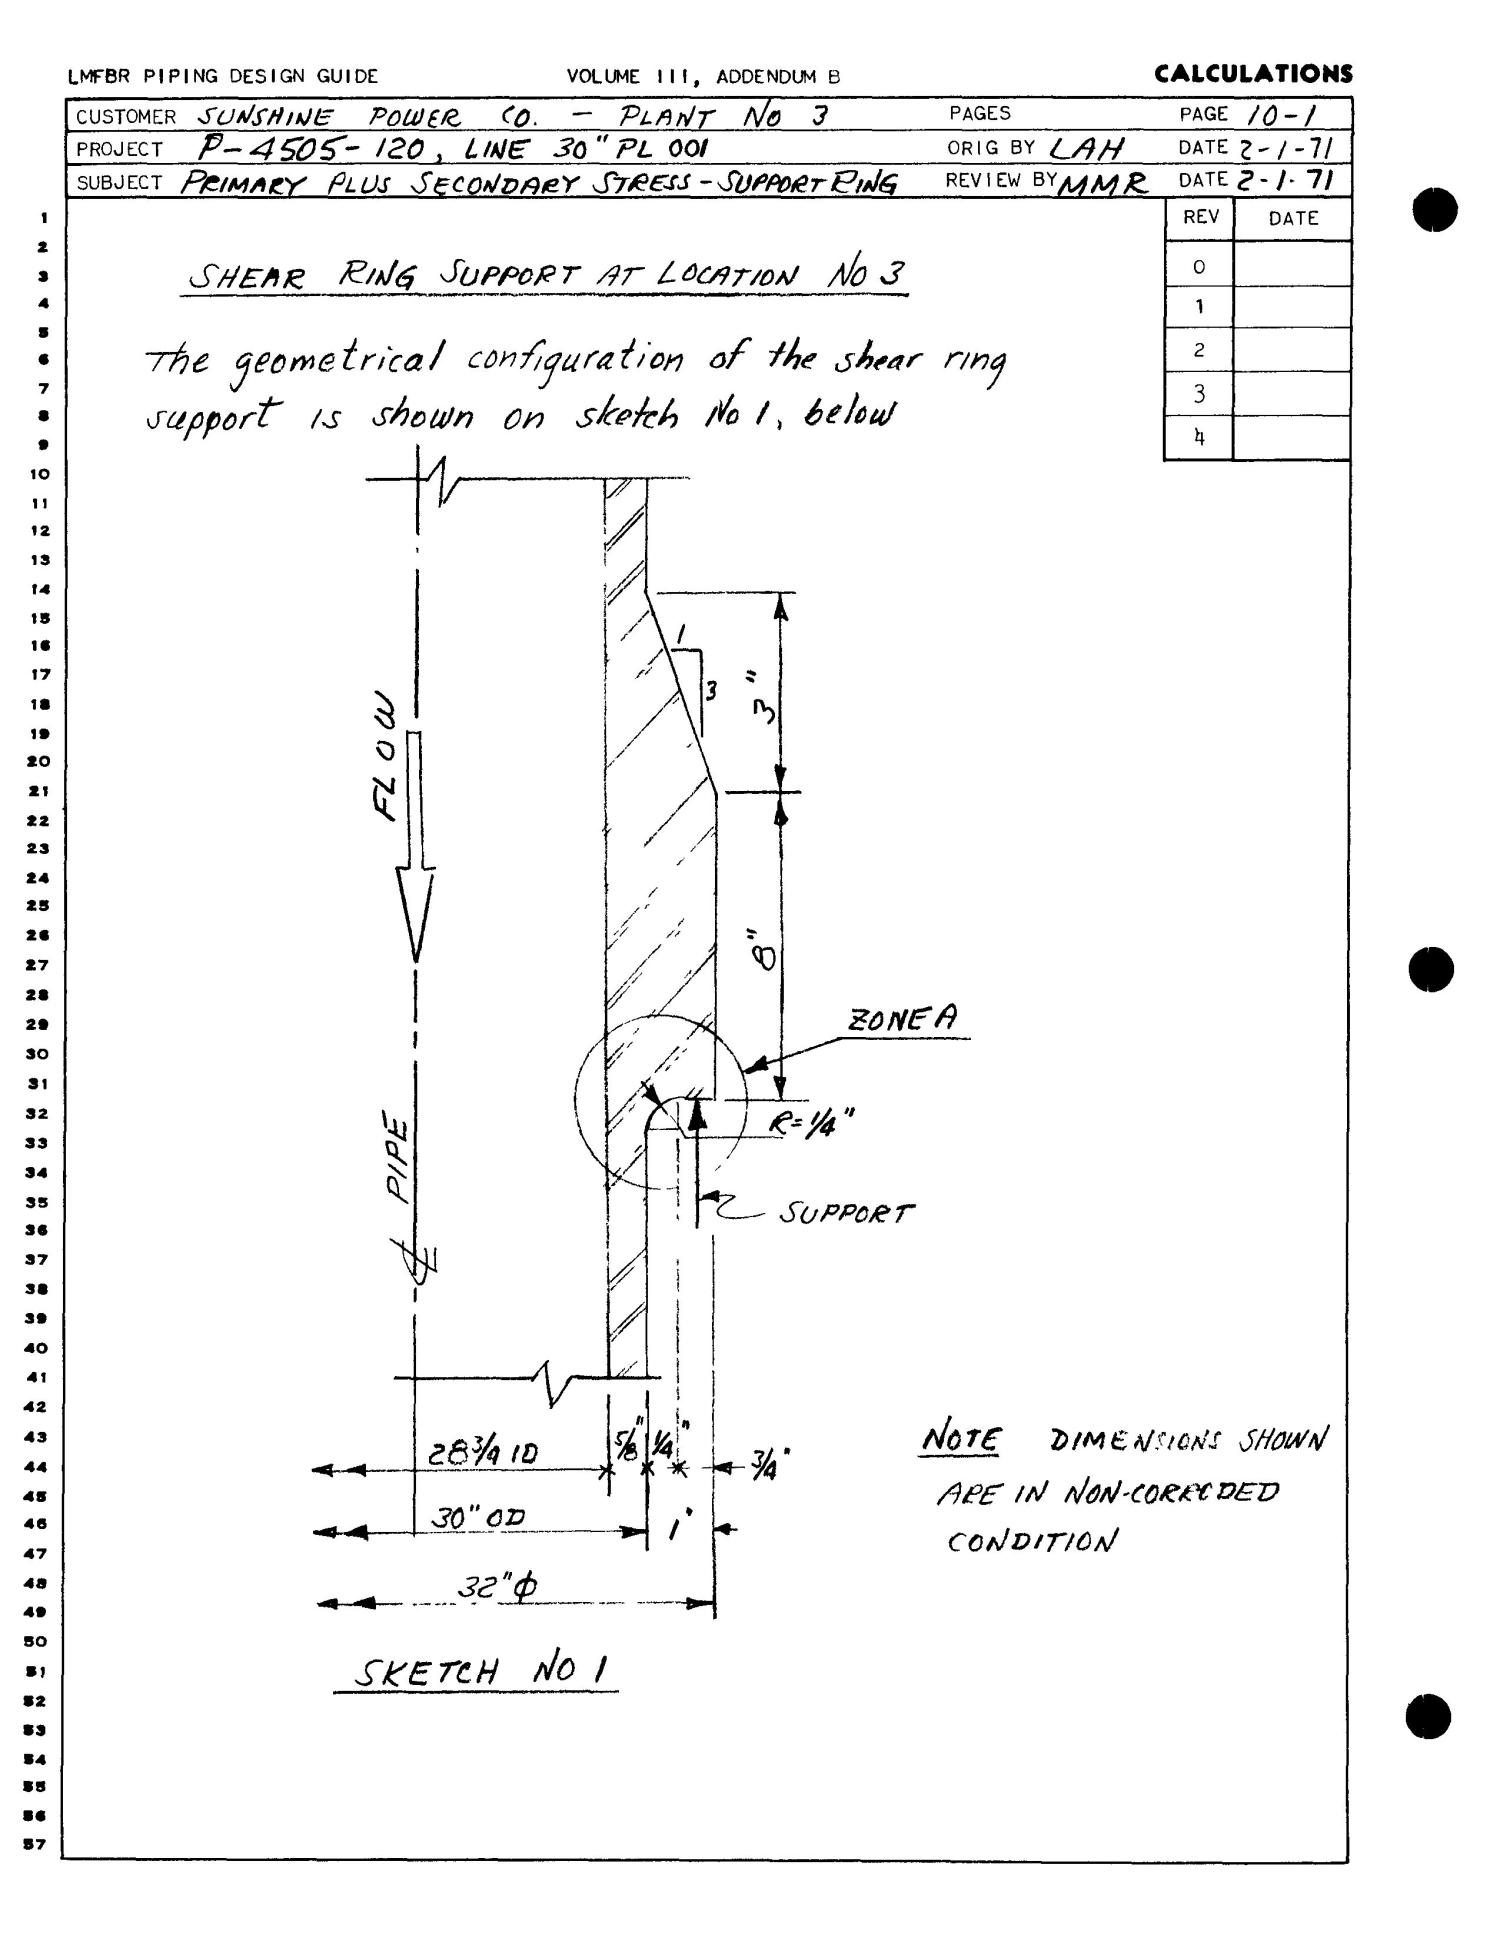 DESIGN GUIDE FOR LMFBR SODIUM PIPING  - Page 797 of 835 - Digital